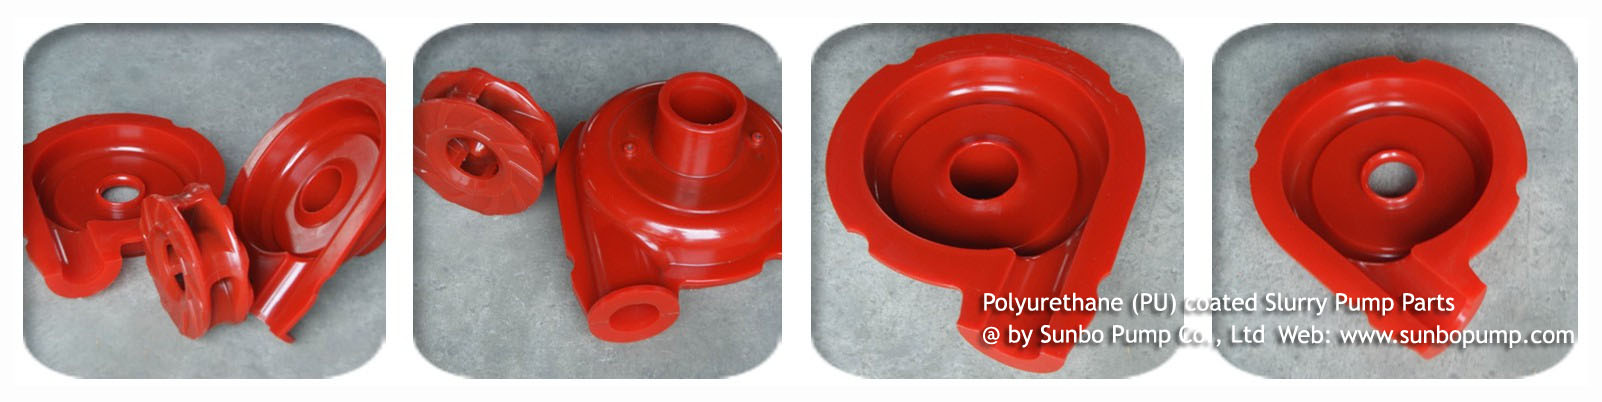 Elastomer Polyurethane Slurry Pumps